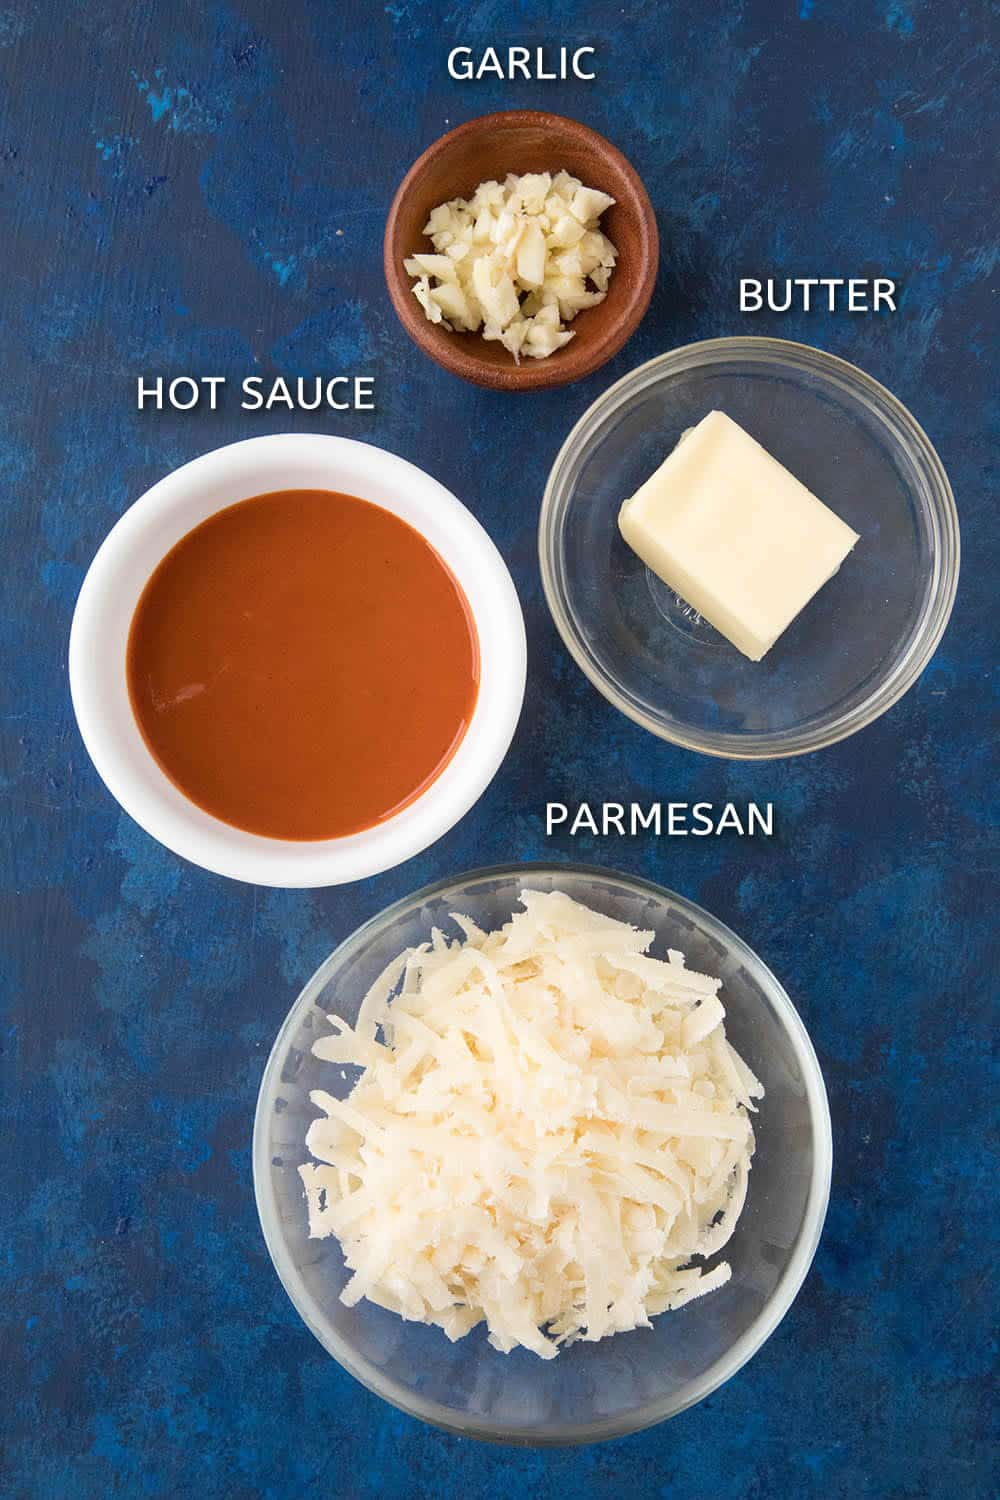 Ingredients for making our Garlic Parmesan Chicken Wings Sauce